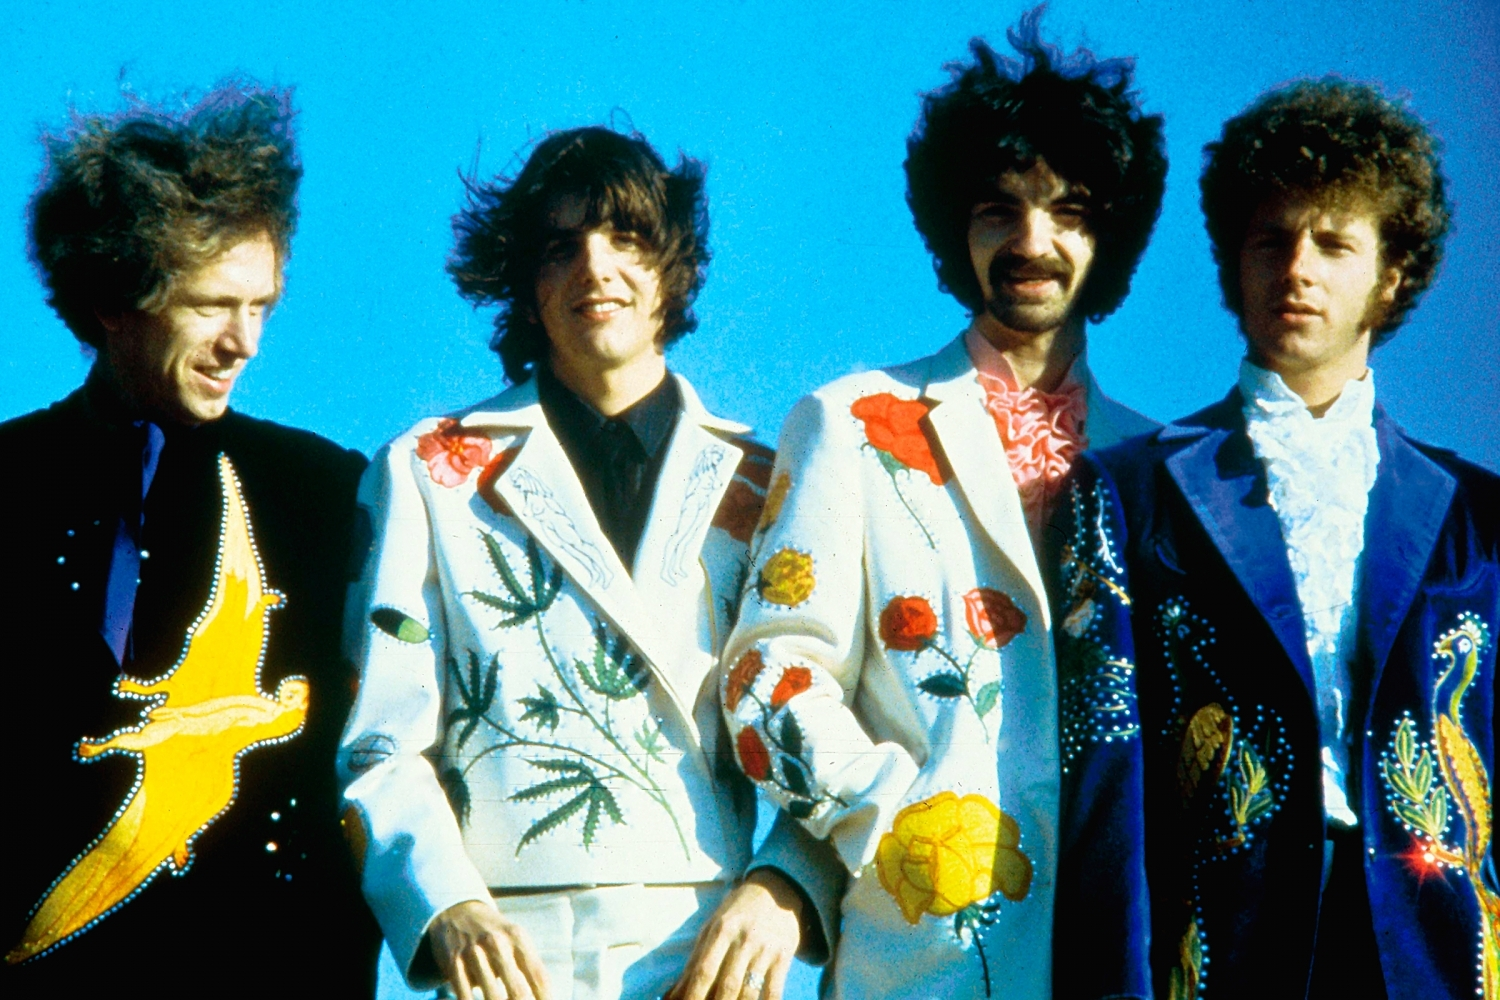 Get a second helping of Gram Parsons and the Flying Burrito Brothers with 'Burrito Deluxe'